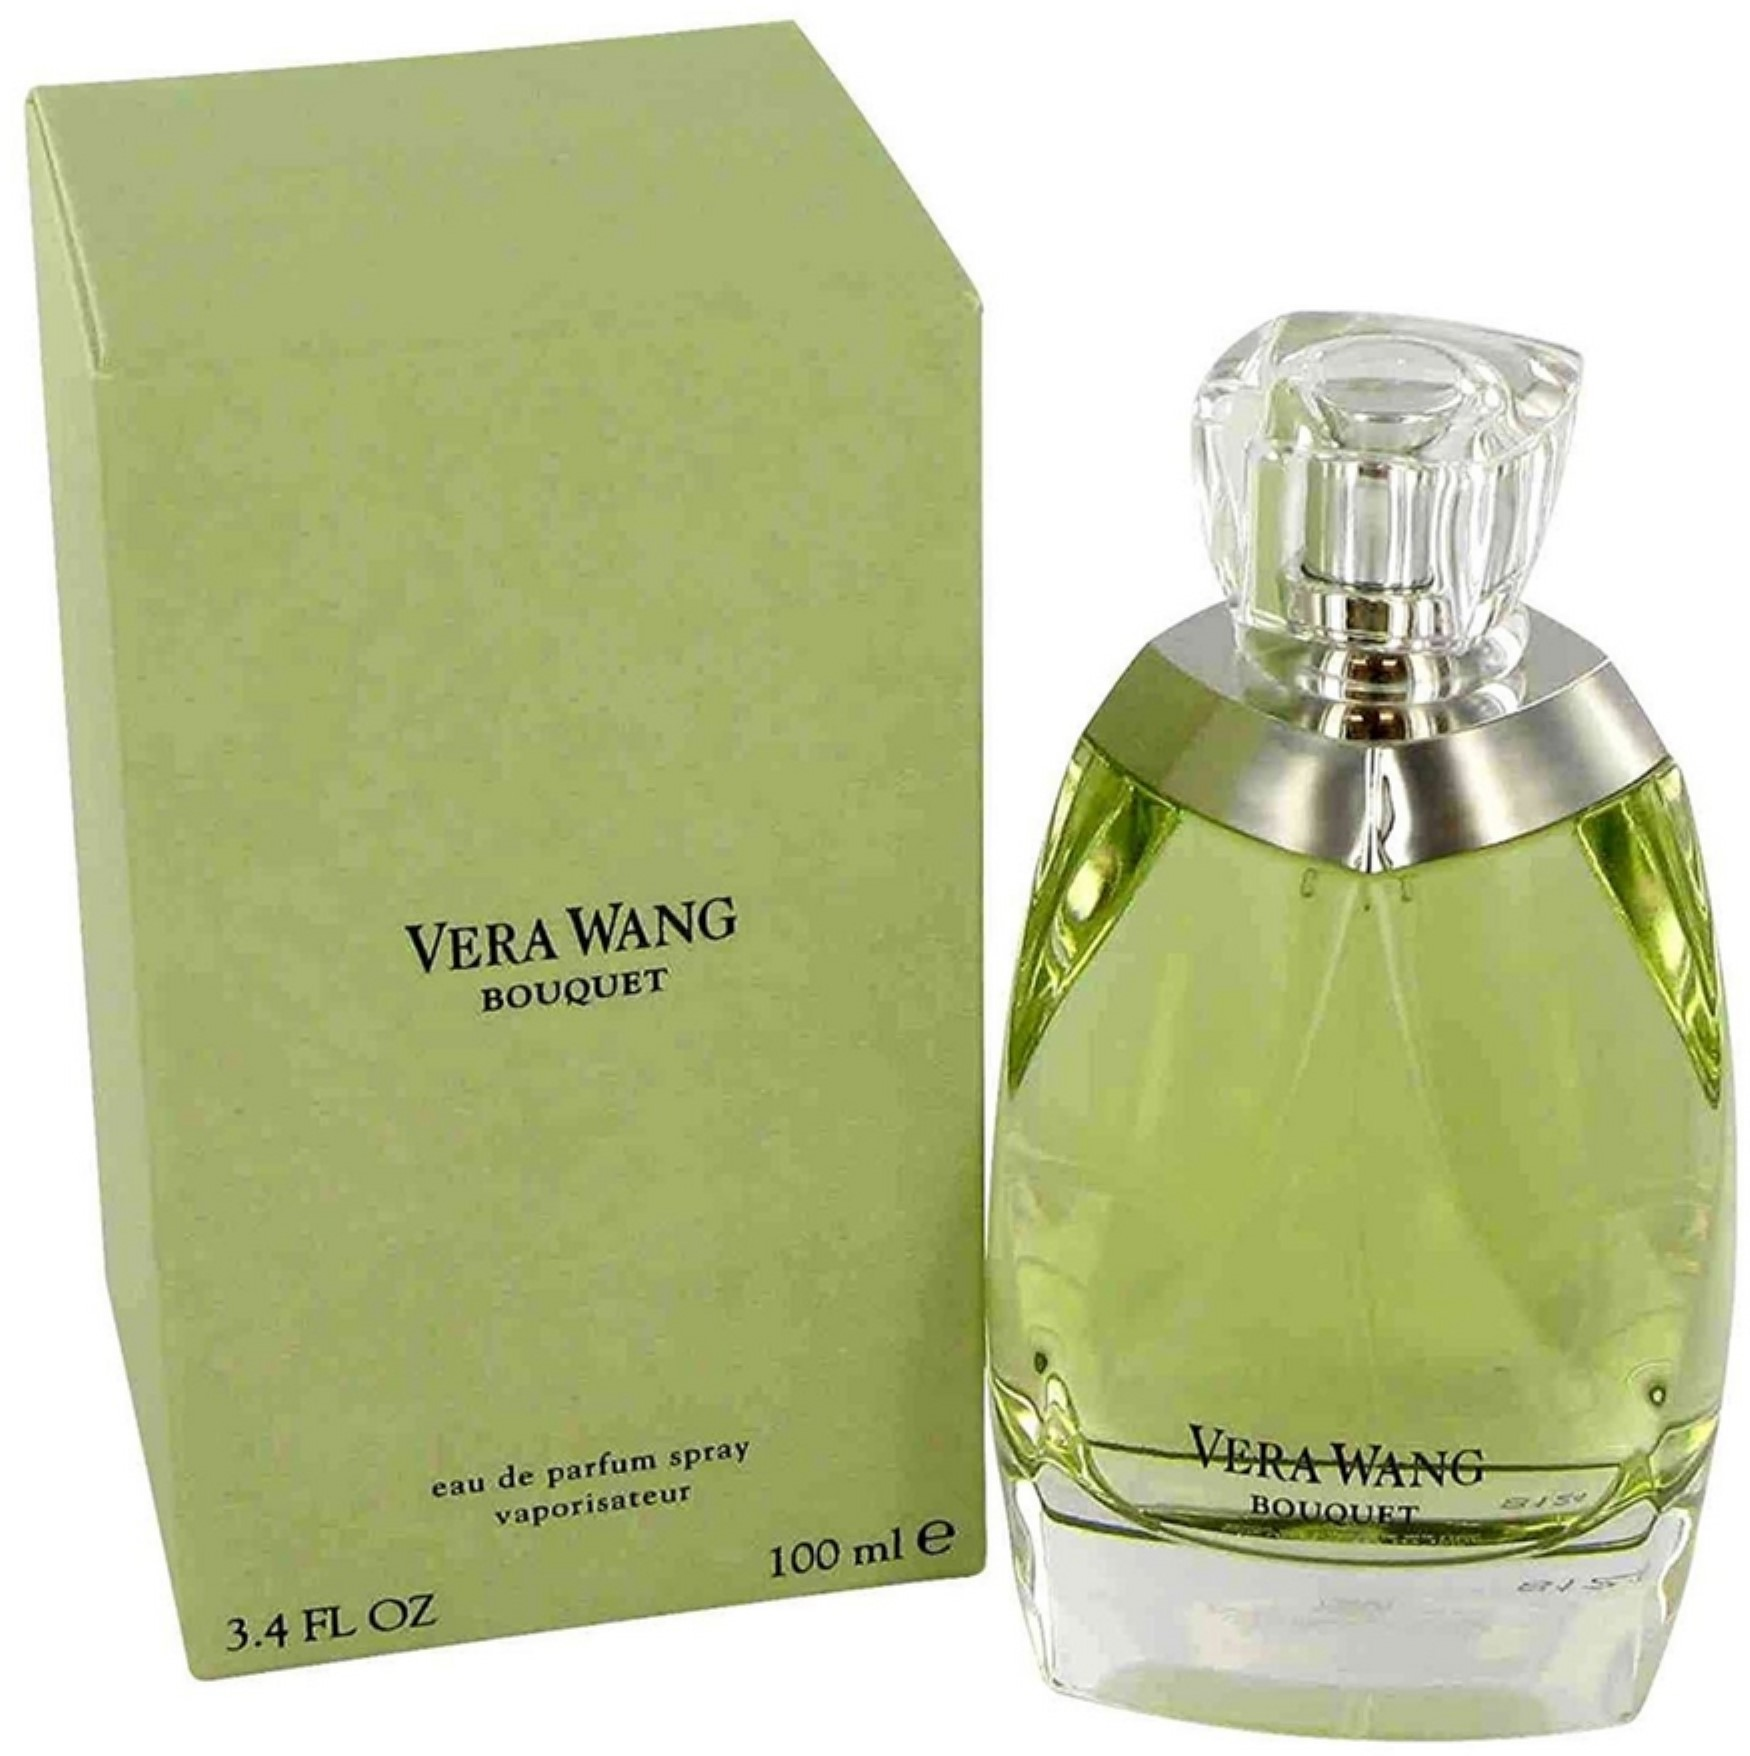 Vera Wang Bouquet Eau de Parfum Spray, 3.4 Oz